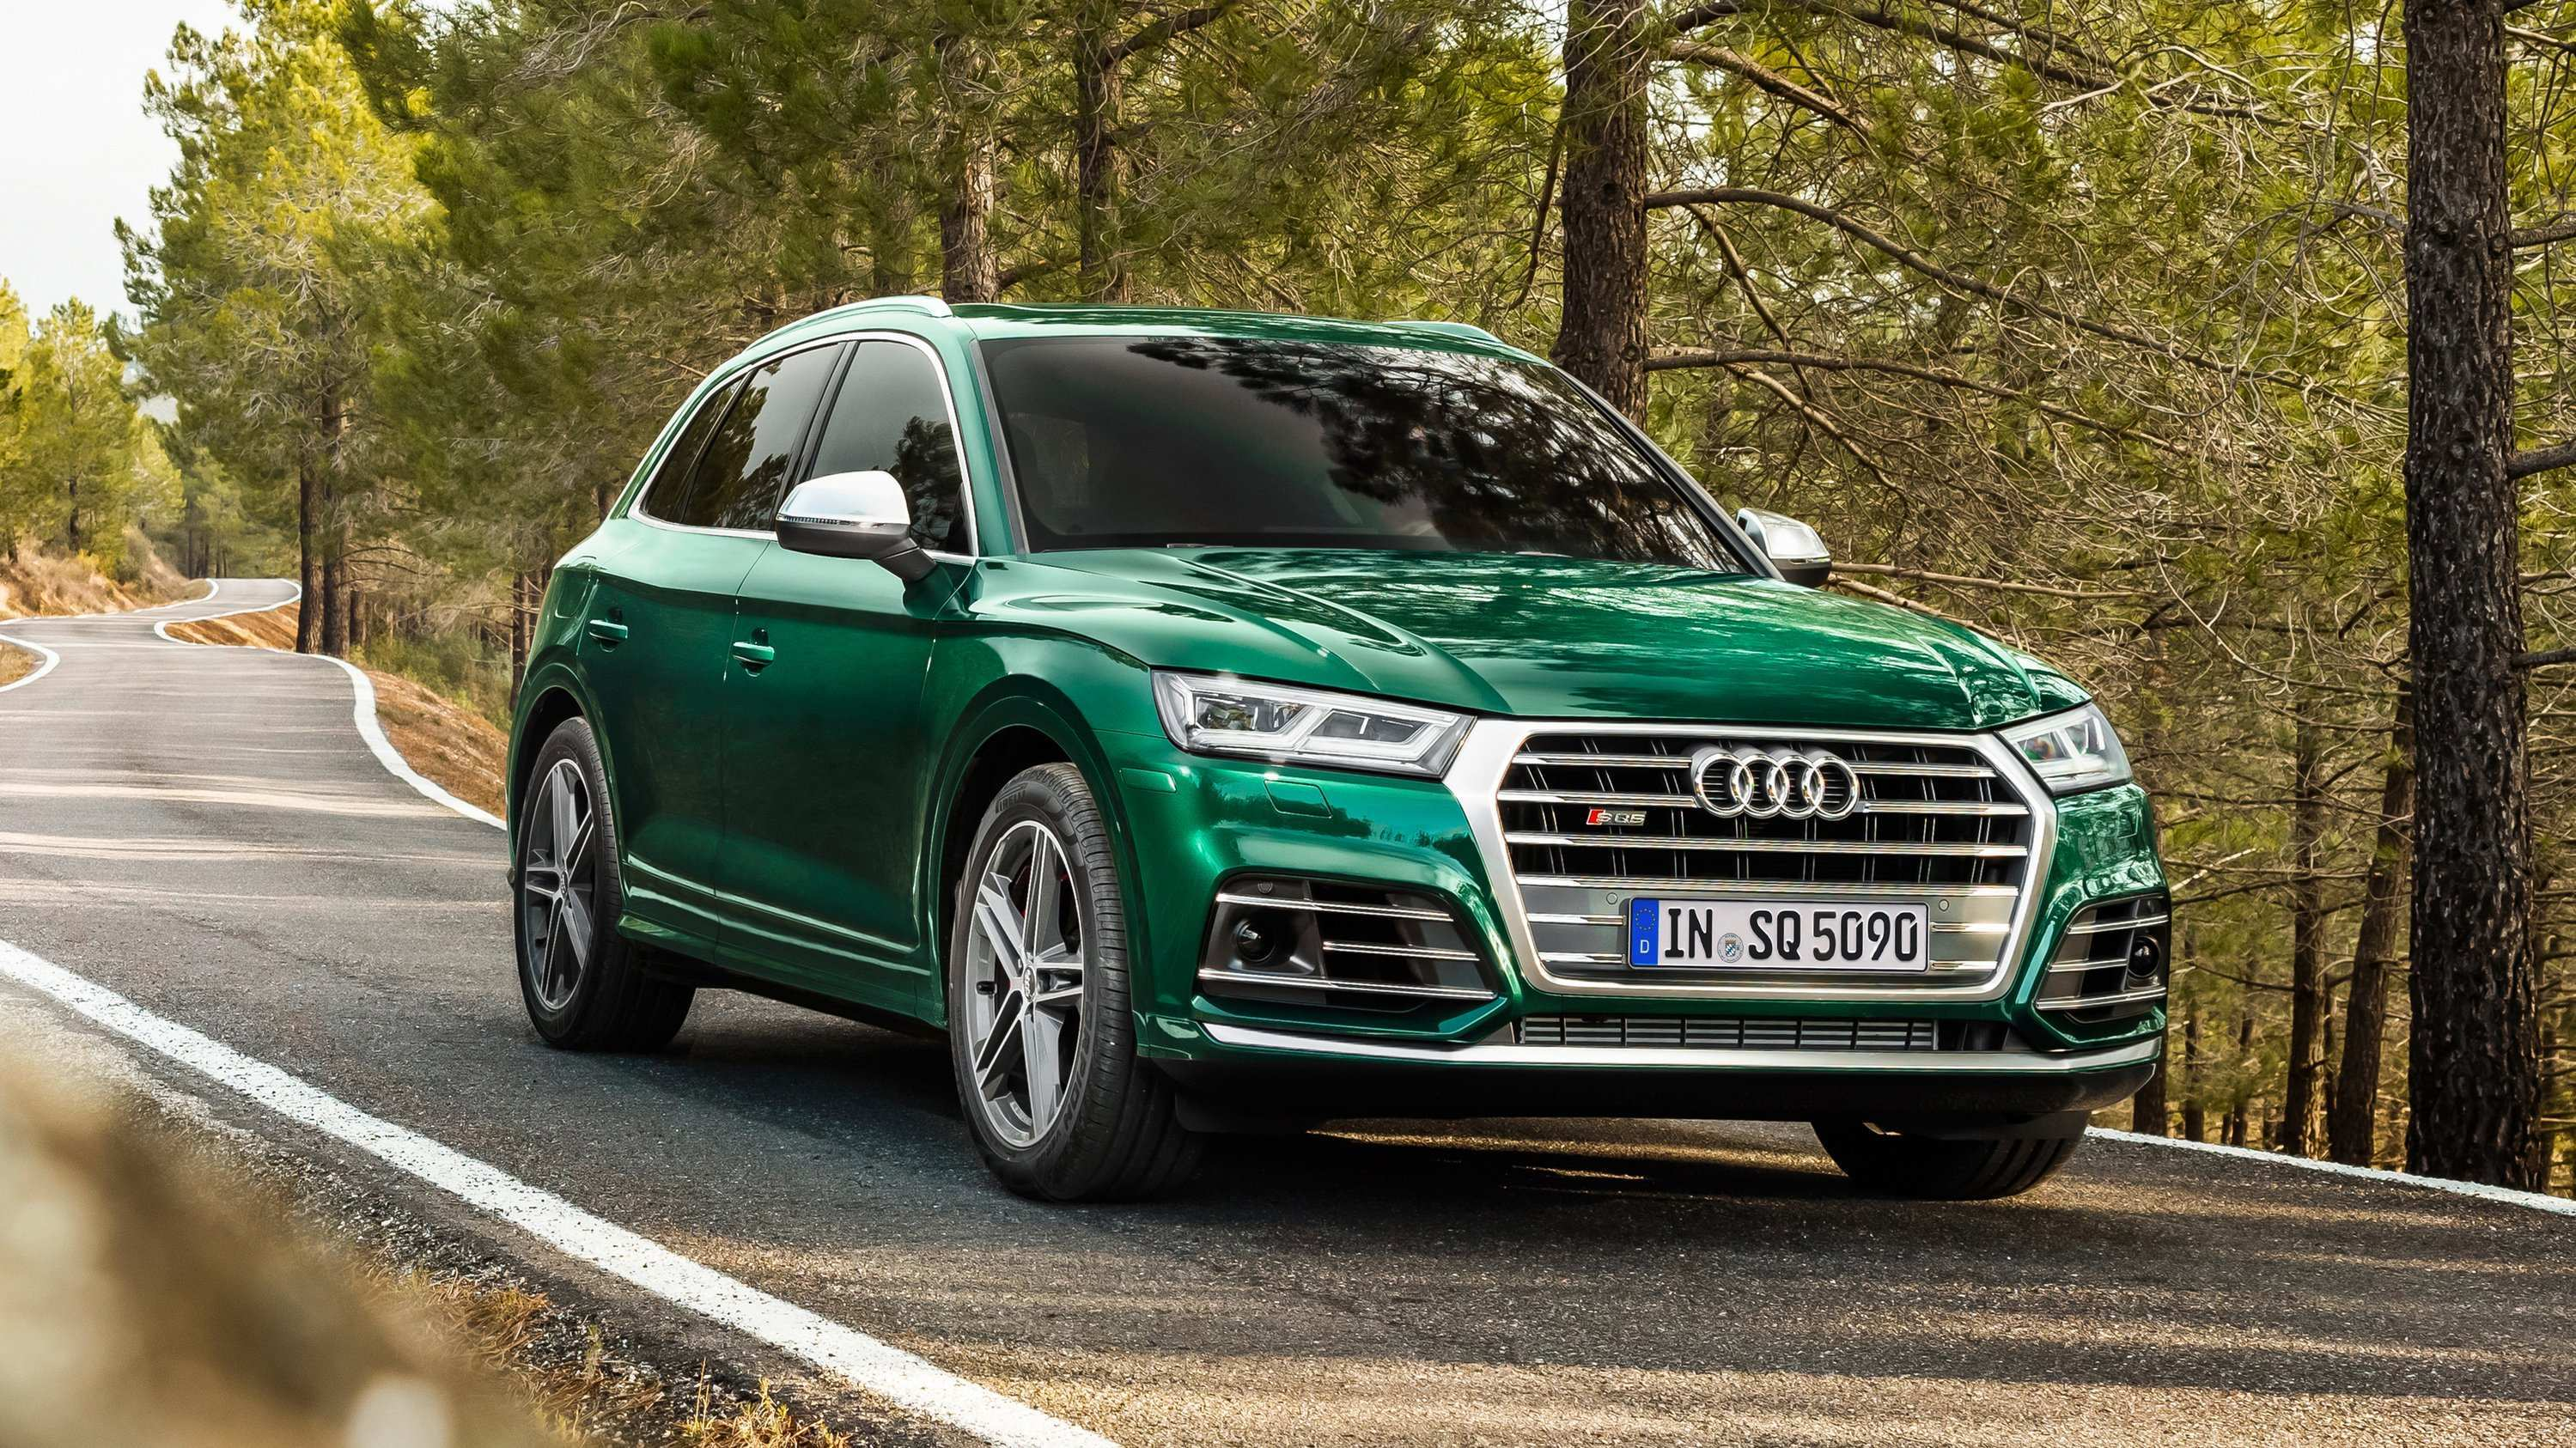 59 The Best 2019 Audi Green Concept